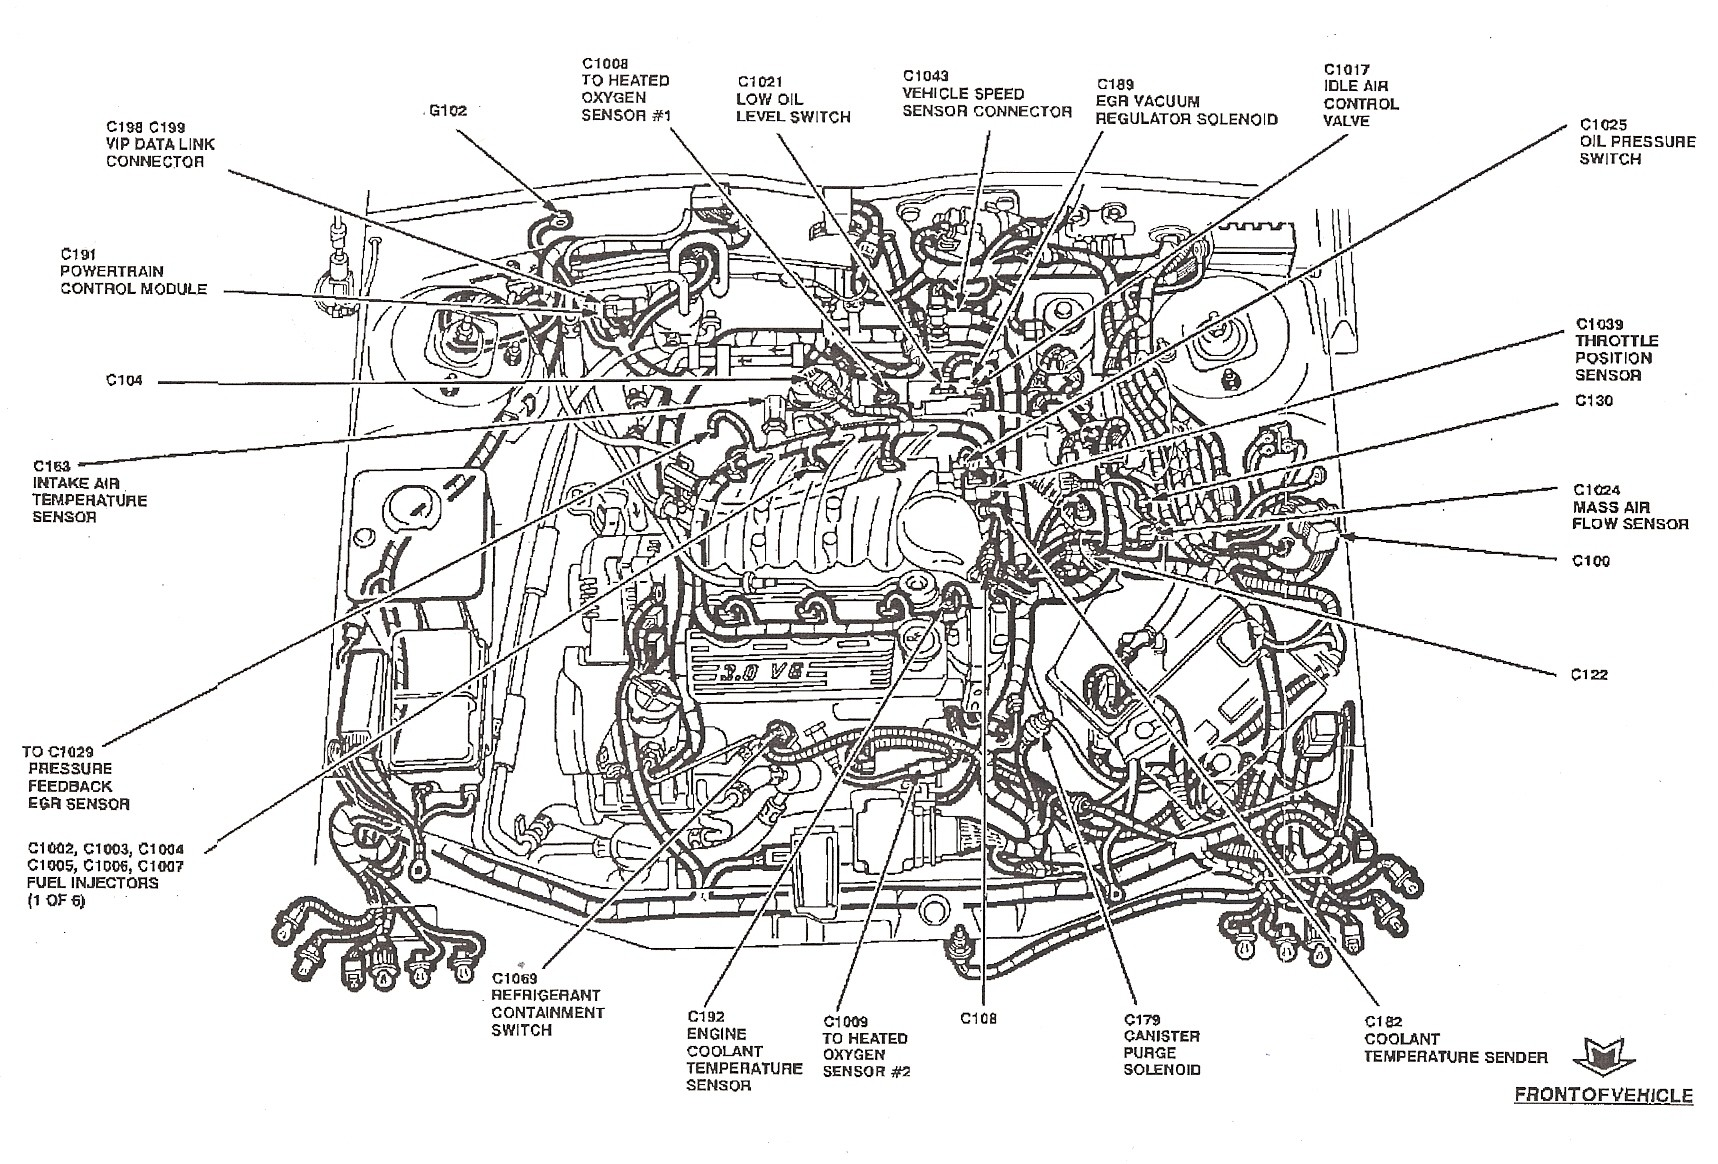 2002 ford Explorer Xlt Engine Diagram Zetec Engine Diagram Vacuum Wiring Wiring Diagrams Instructions Of 2002 ford Explorer Xlt Engine Diagram